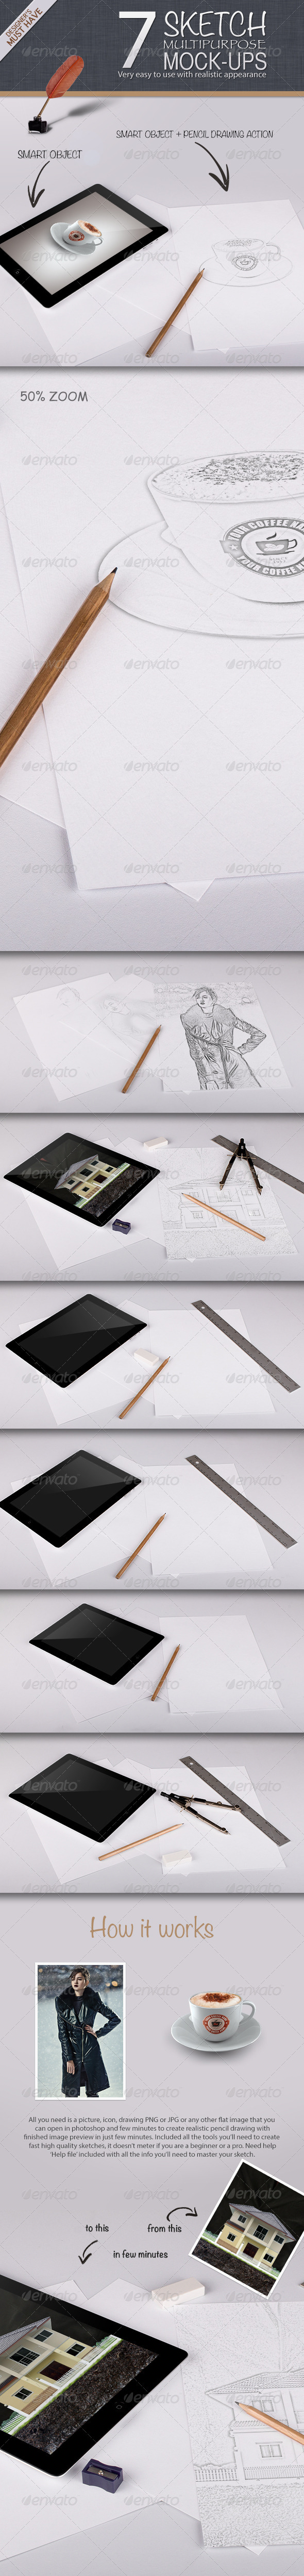 Sketch Multipurpose Mock-ups - Miscellaneous Print